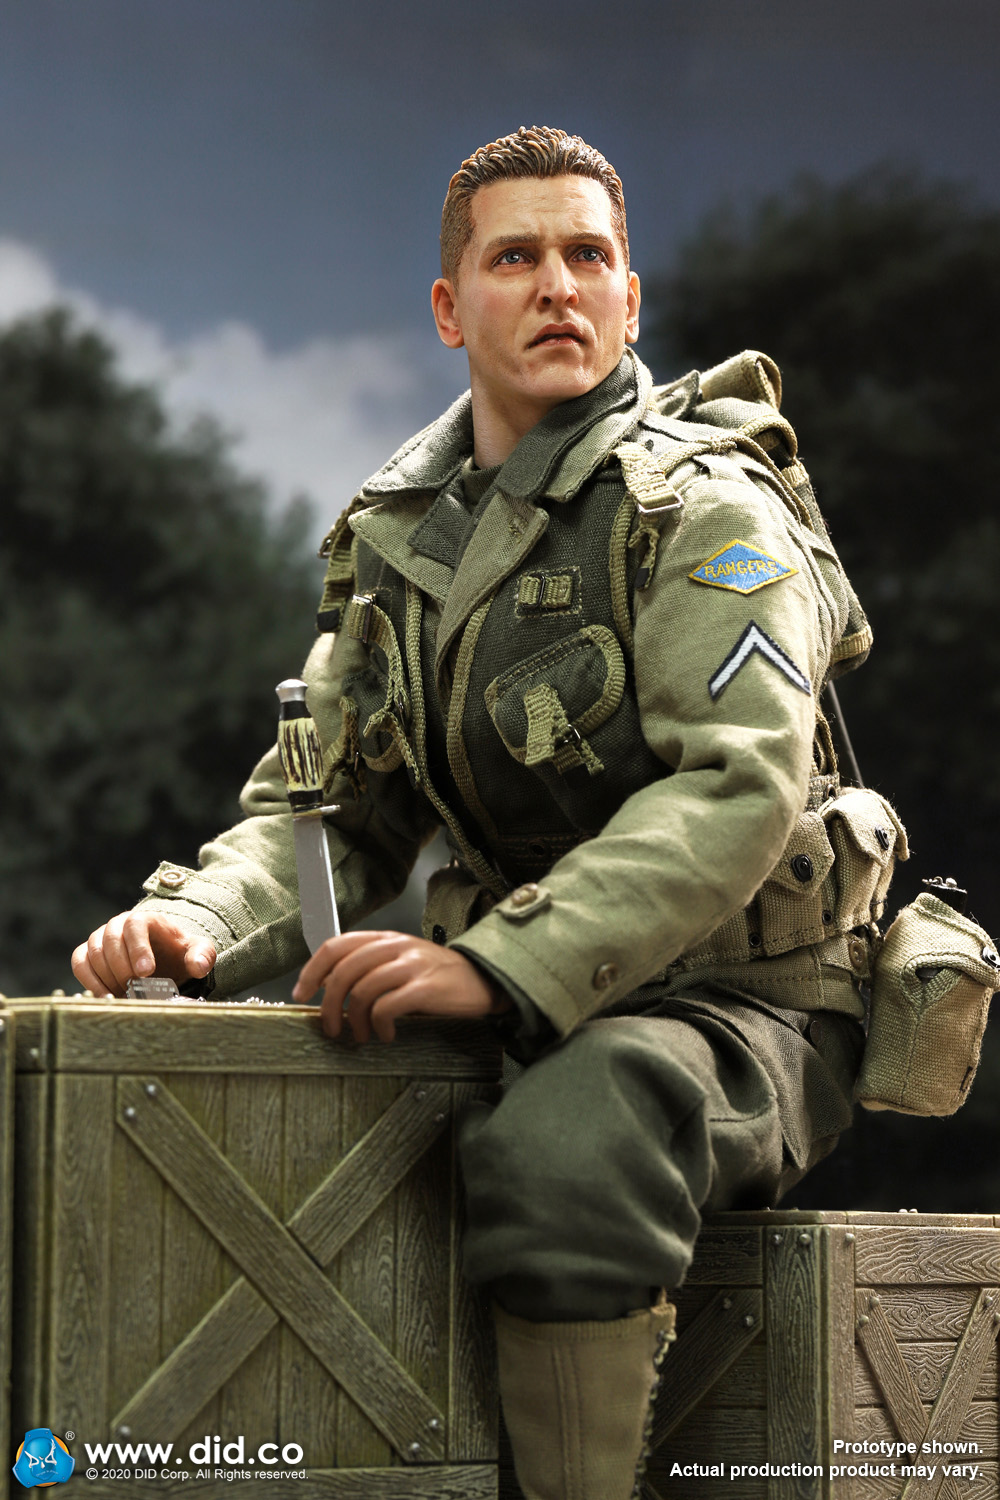 DiD - NEW PRODUCT: DiD: A80144 WWII US 2nd Ranger Battalion Series 4 Private Jackson 2844